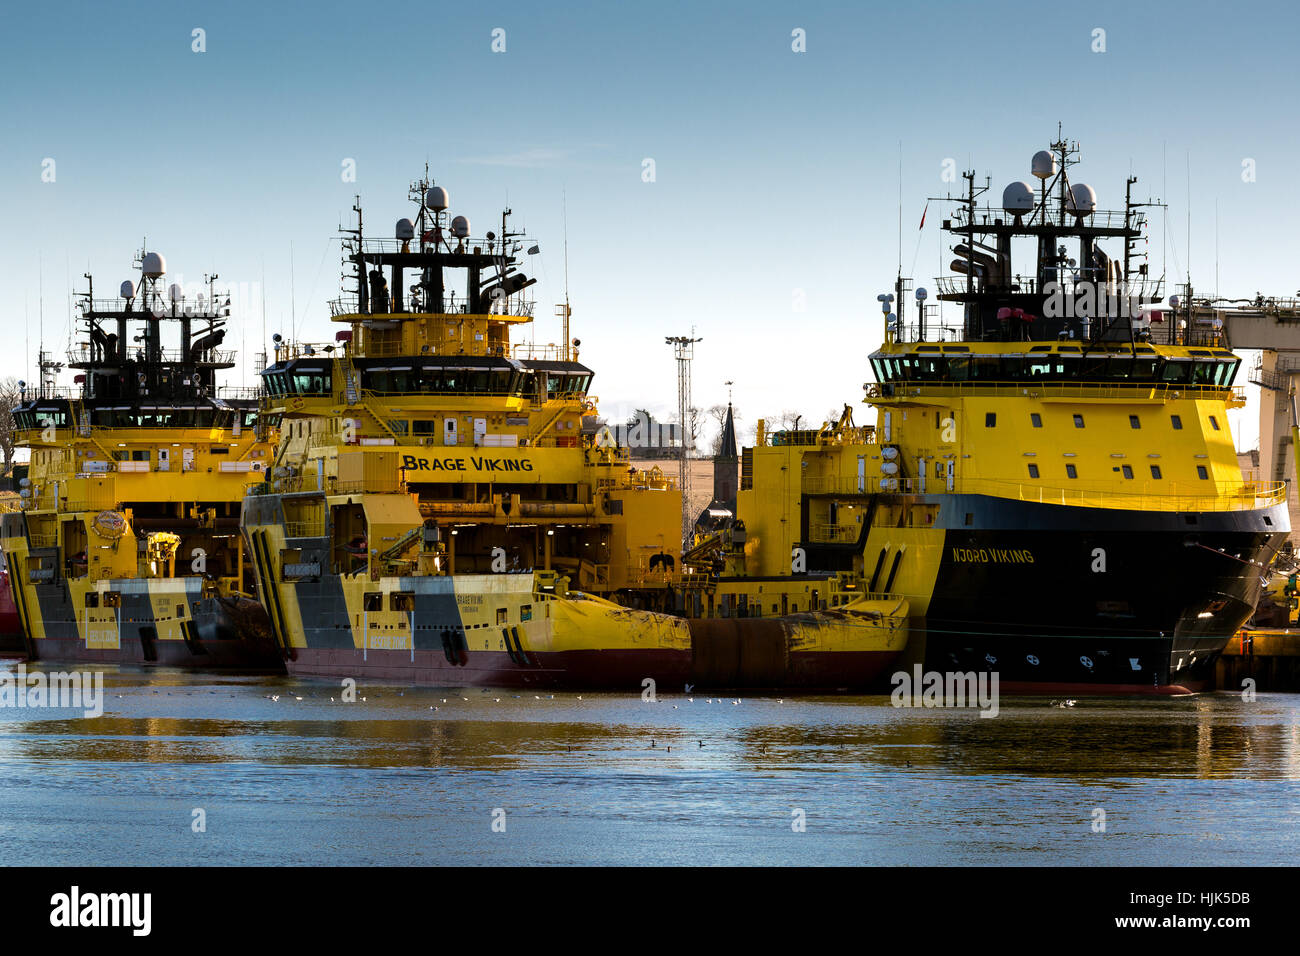 Viking  yellow oil industry supply ships berthed Montrose Scotland UK - Stock Image